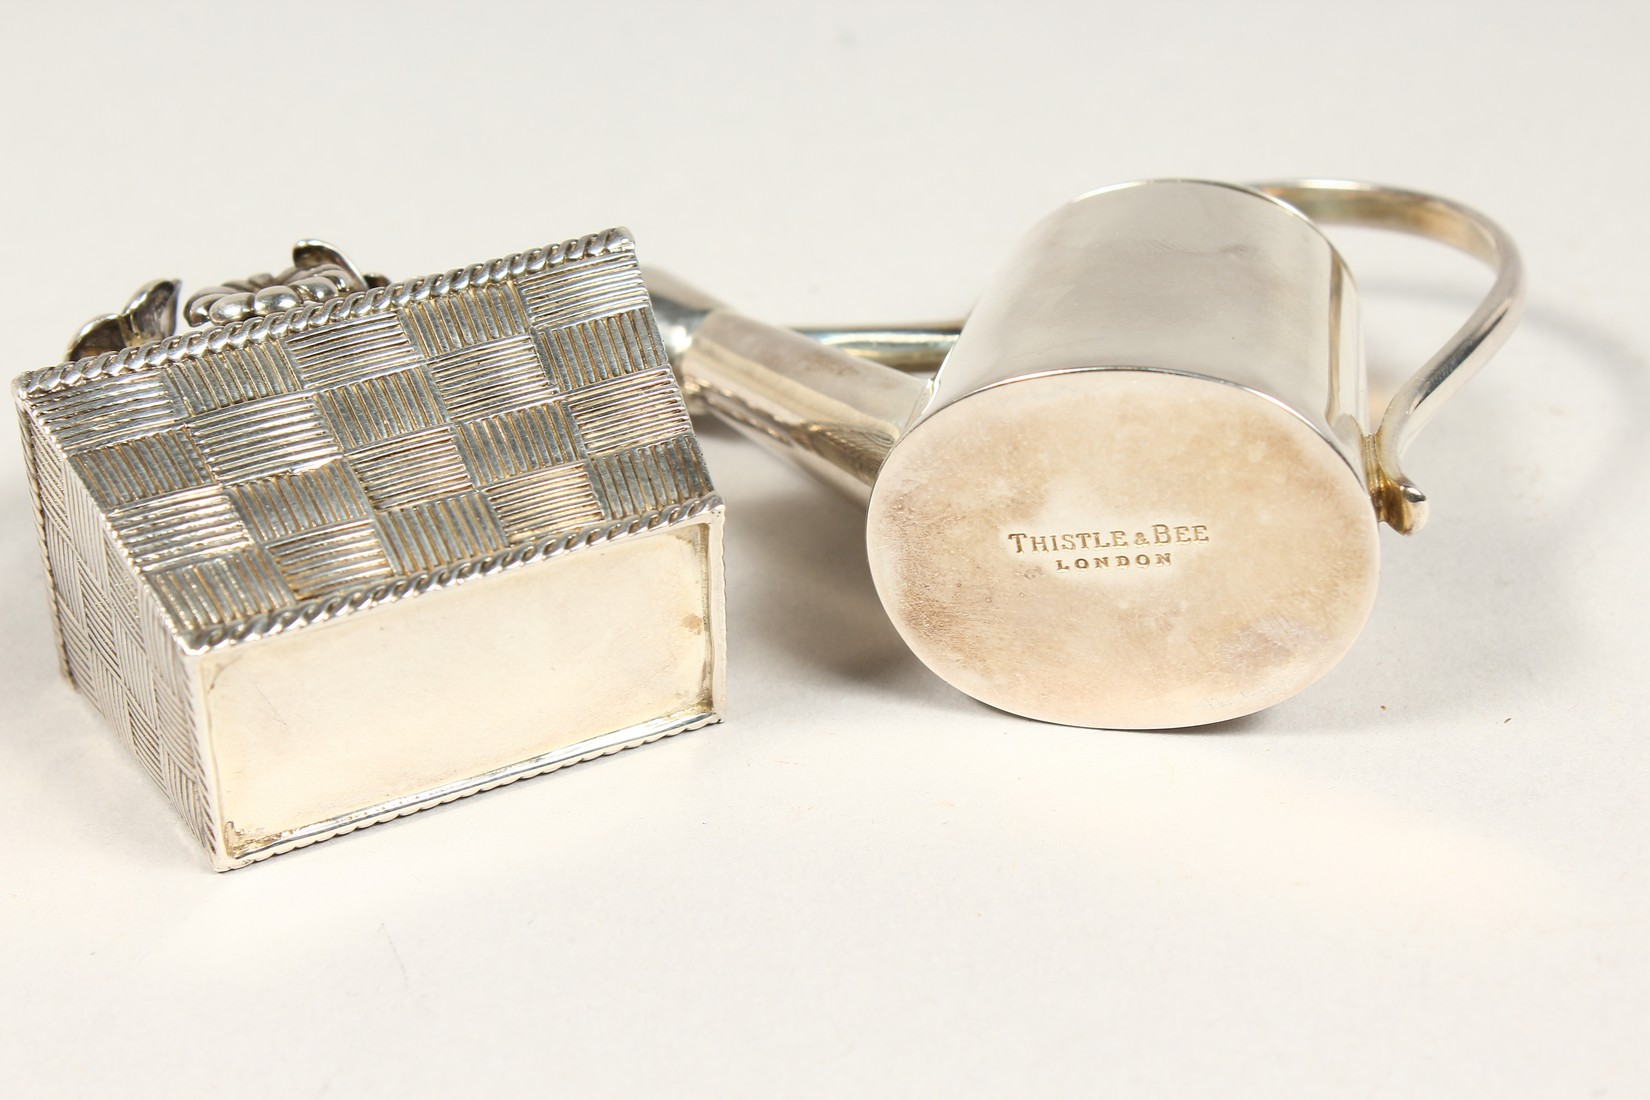 A THISTLE AND BEE SILVER BOX AND WATERING CAN - Image 4 of 5